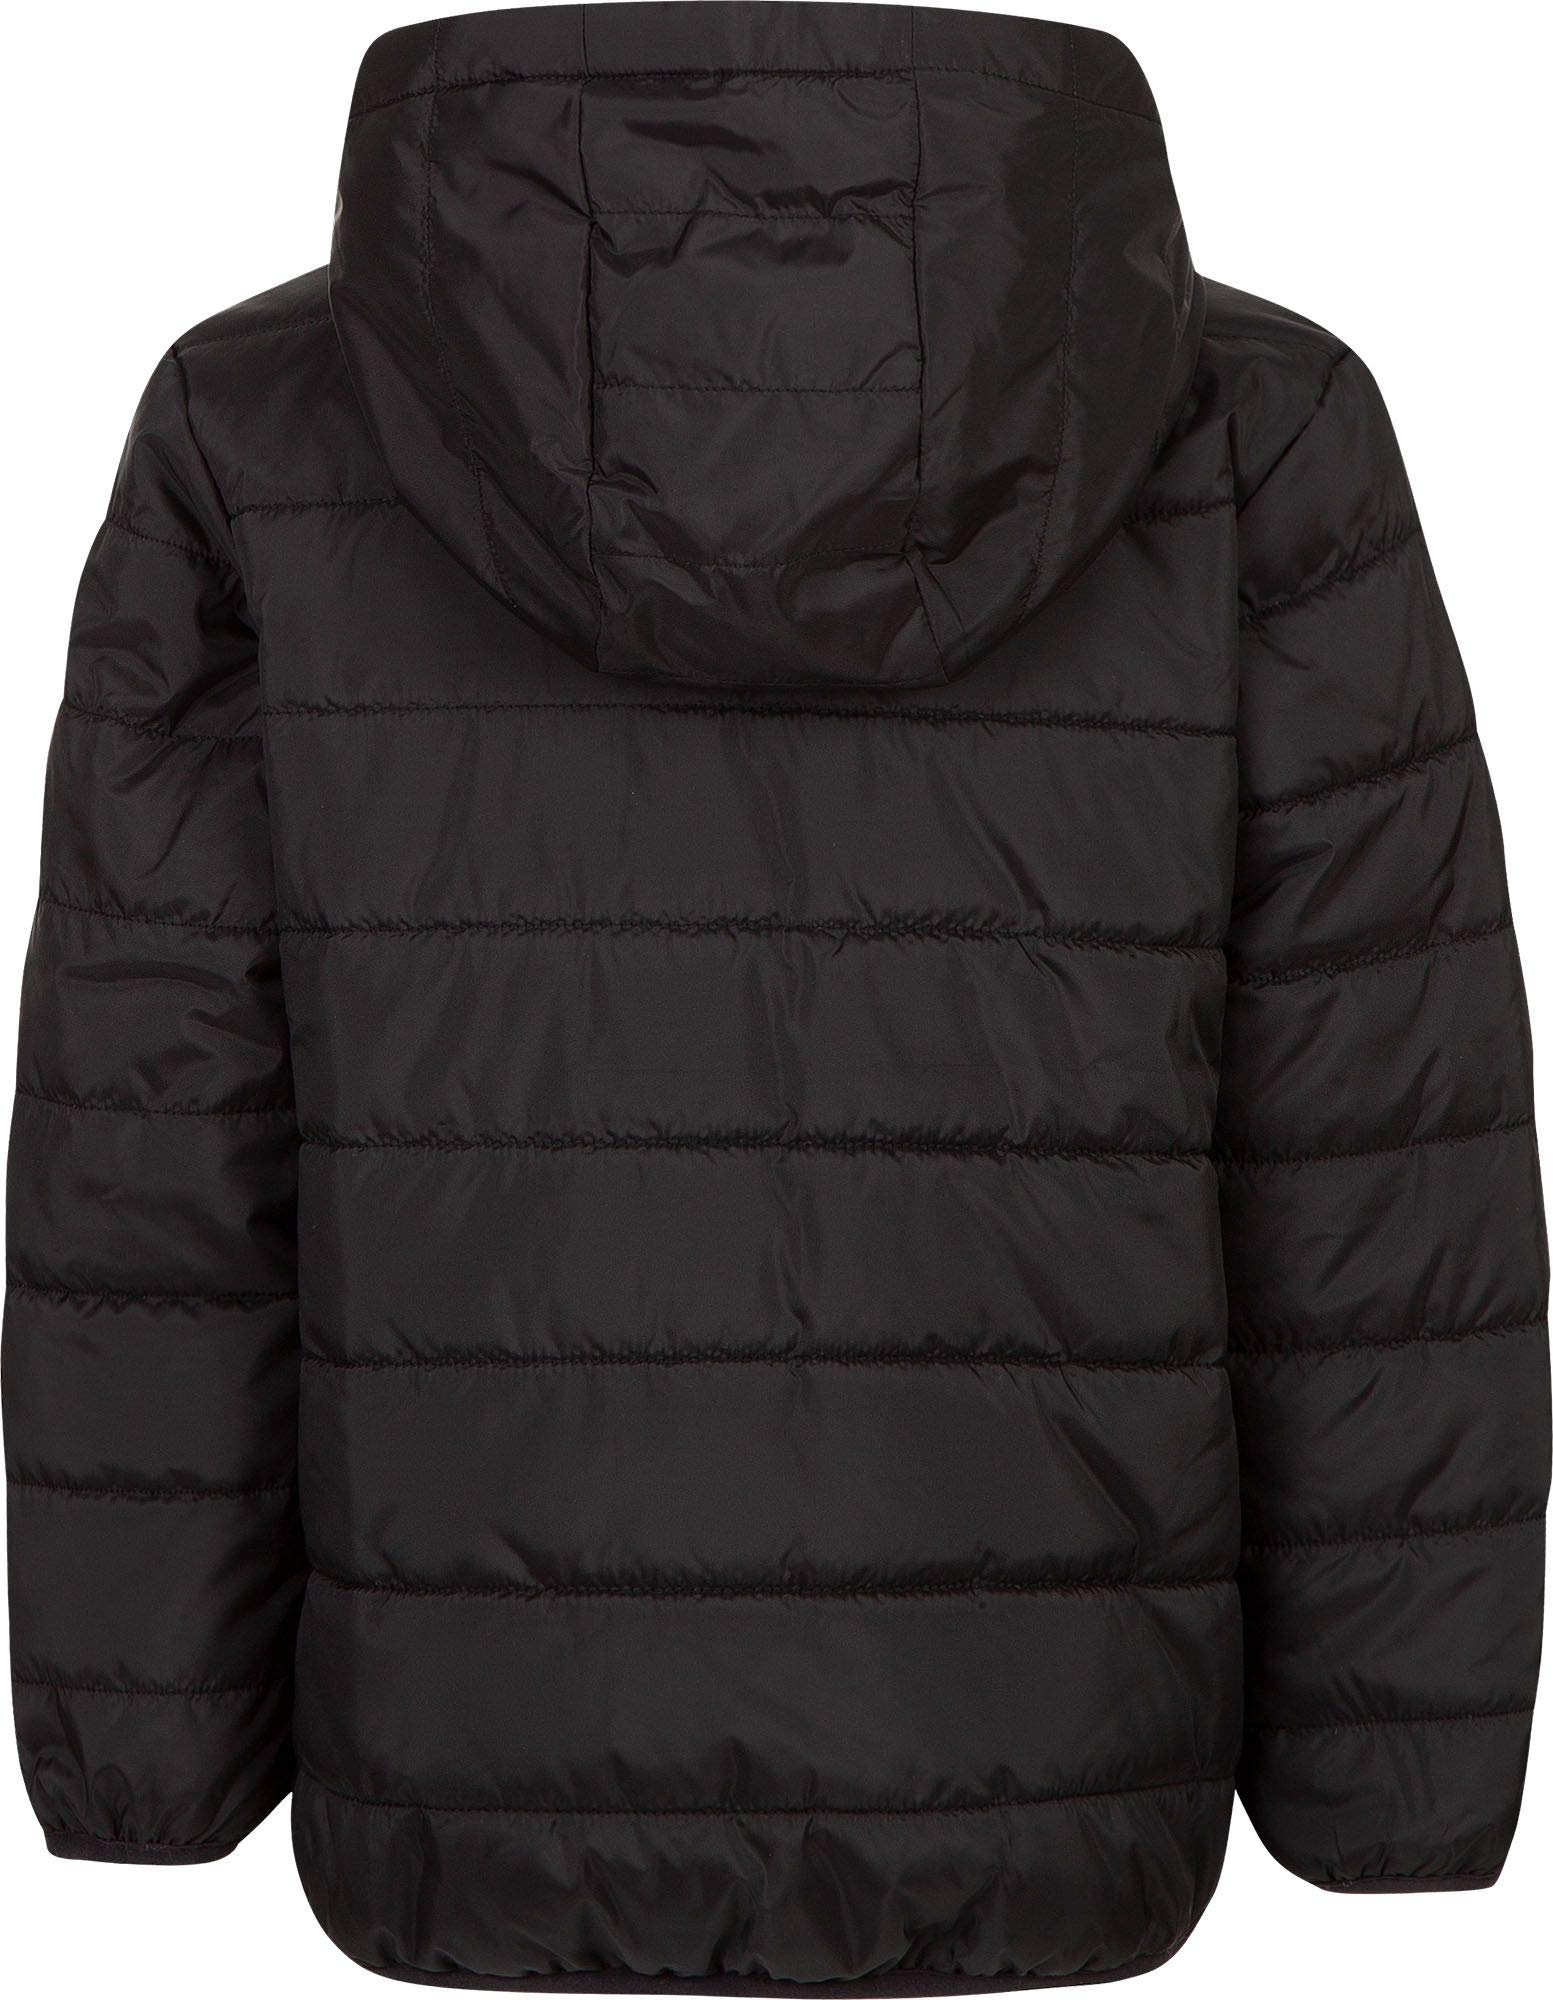 Nike Boy's Polyfill Quilted Insulated Puffer Jacket (Black, 4) by Nike (Image #2)